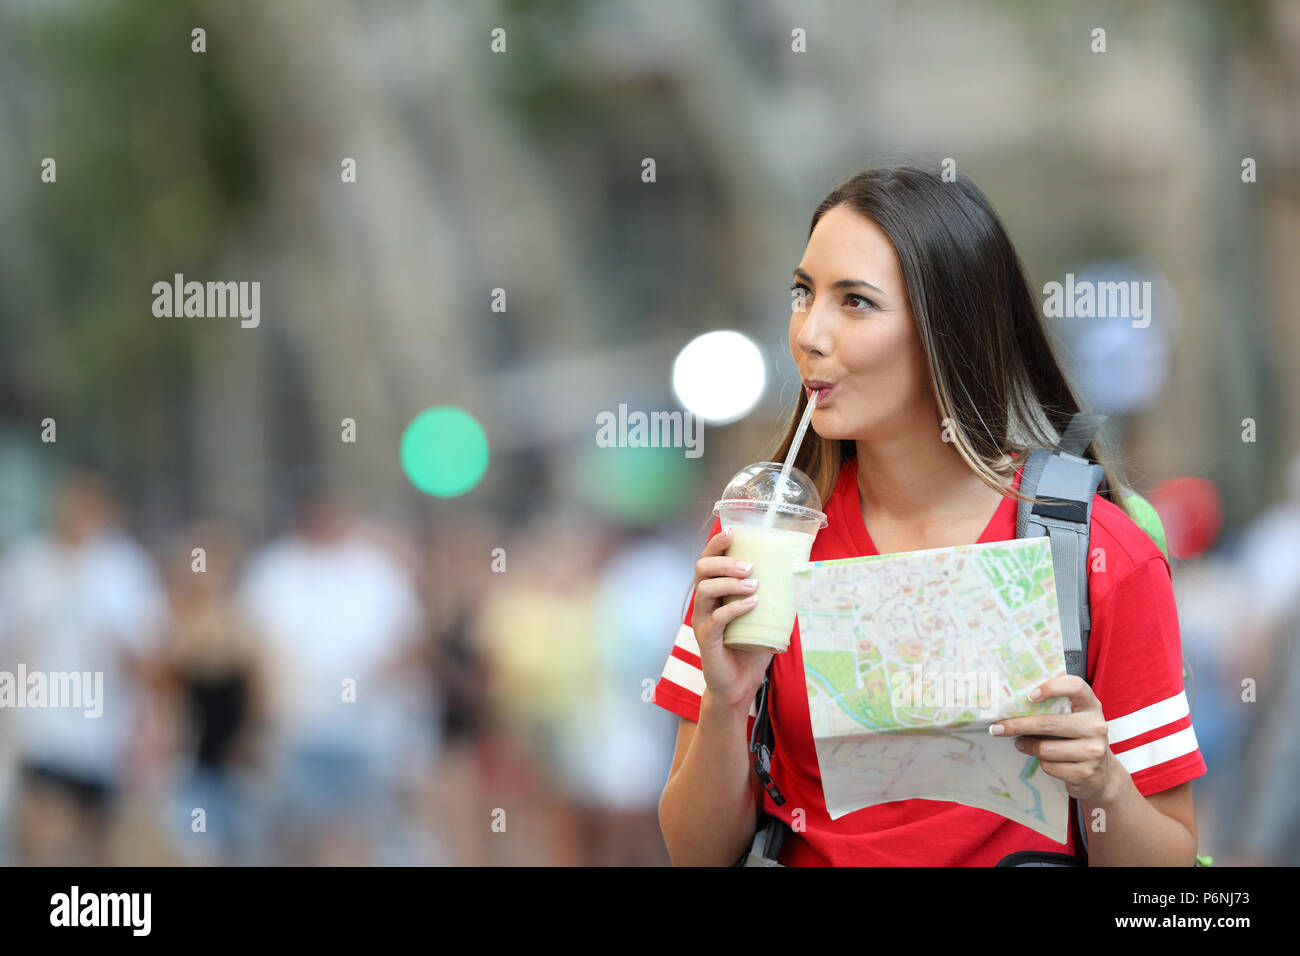 Teen tourist sightseeing drinking smoothie and holding a guide on the street - Stock Image